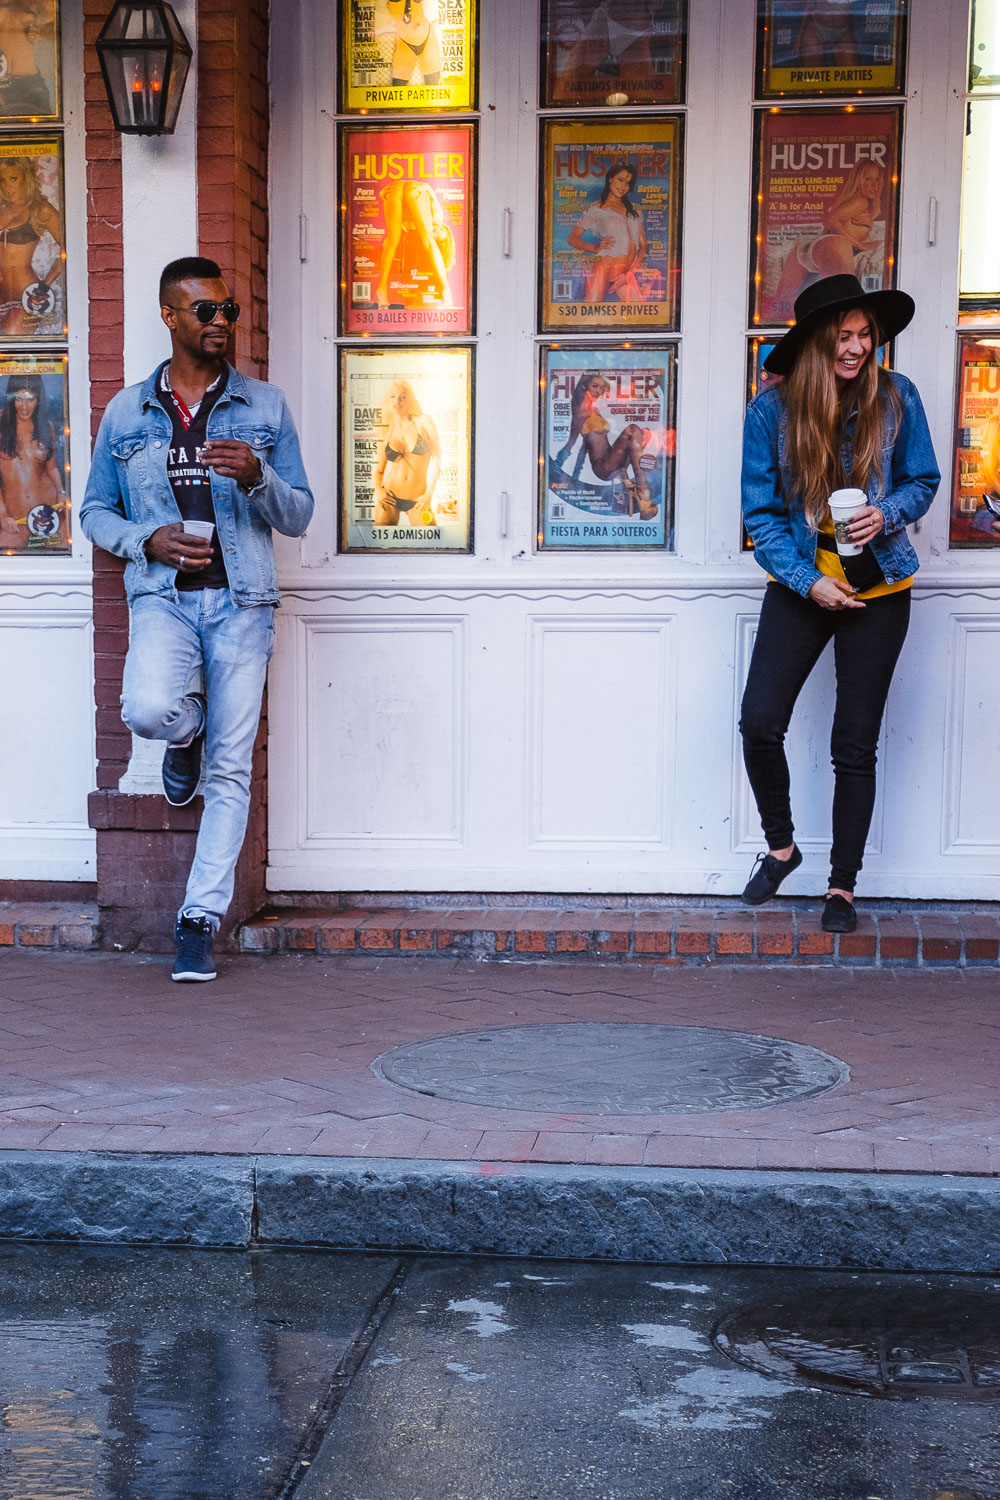 """Hanging out on Bourbon Street - Travel photography and guide by © Natasha Lequepeys for """"And Then I Met Yoko"""". #neworleans #nola #photoblog #streetphotography #travelitinerary #fujifilm"""